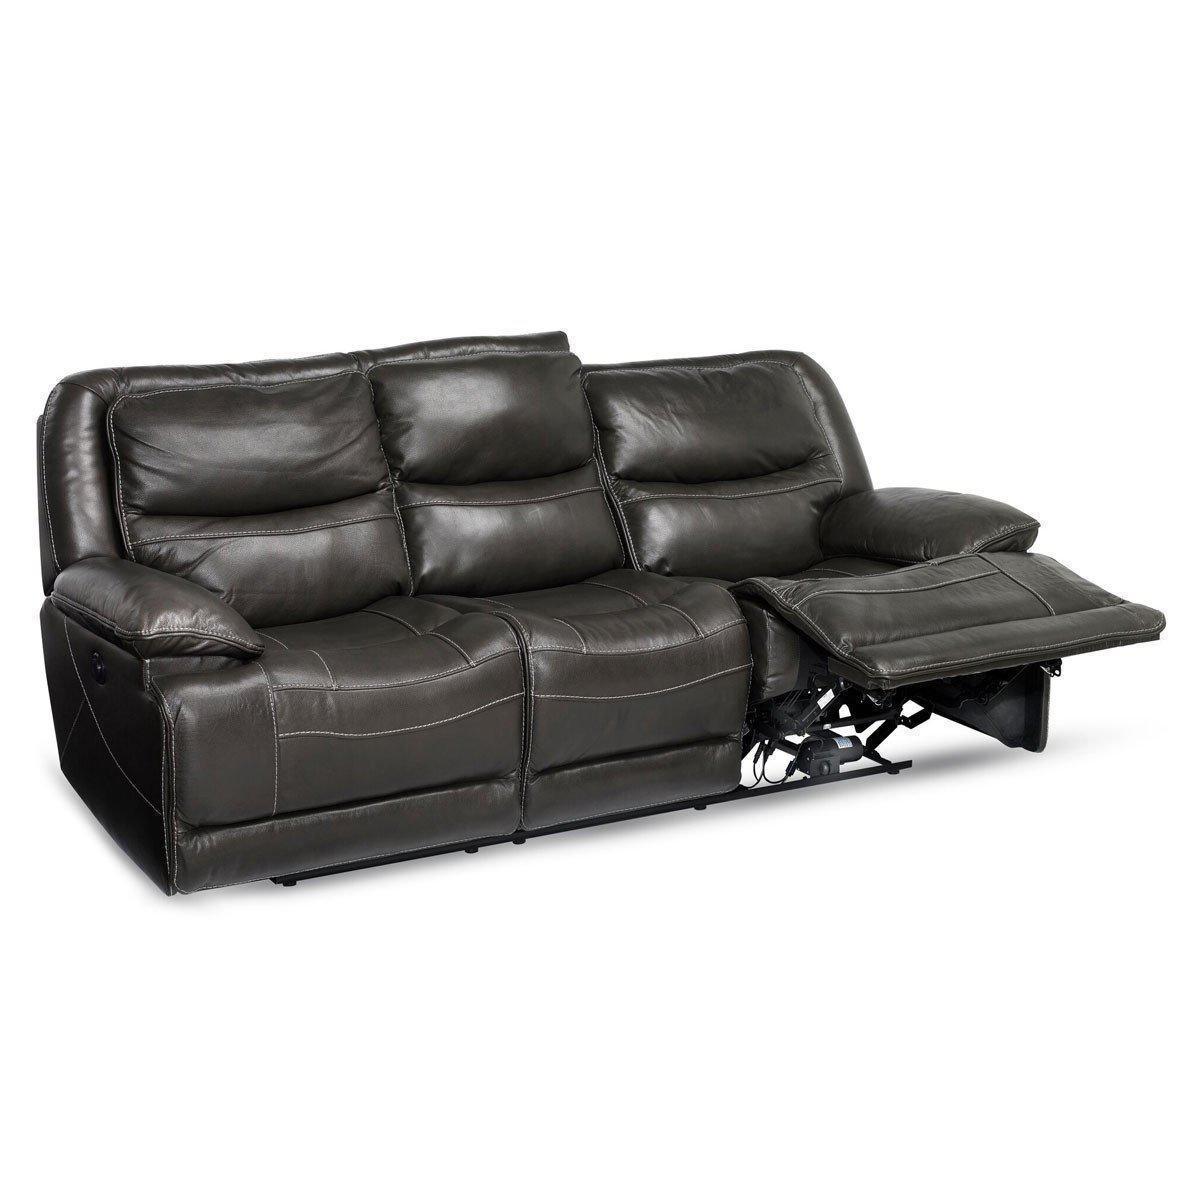 Alden Niles Power Reclining Sofa